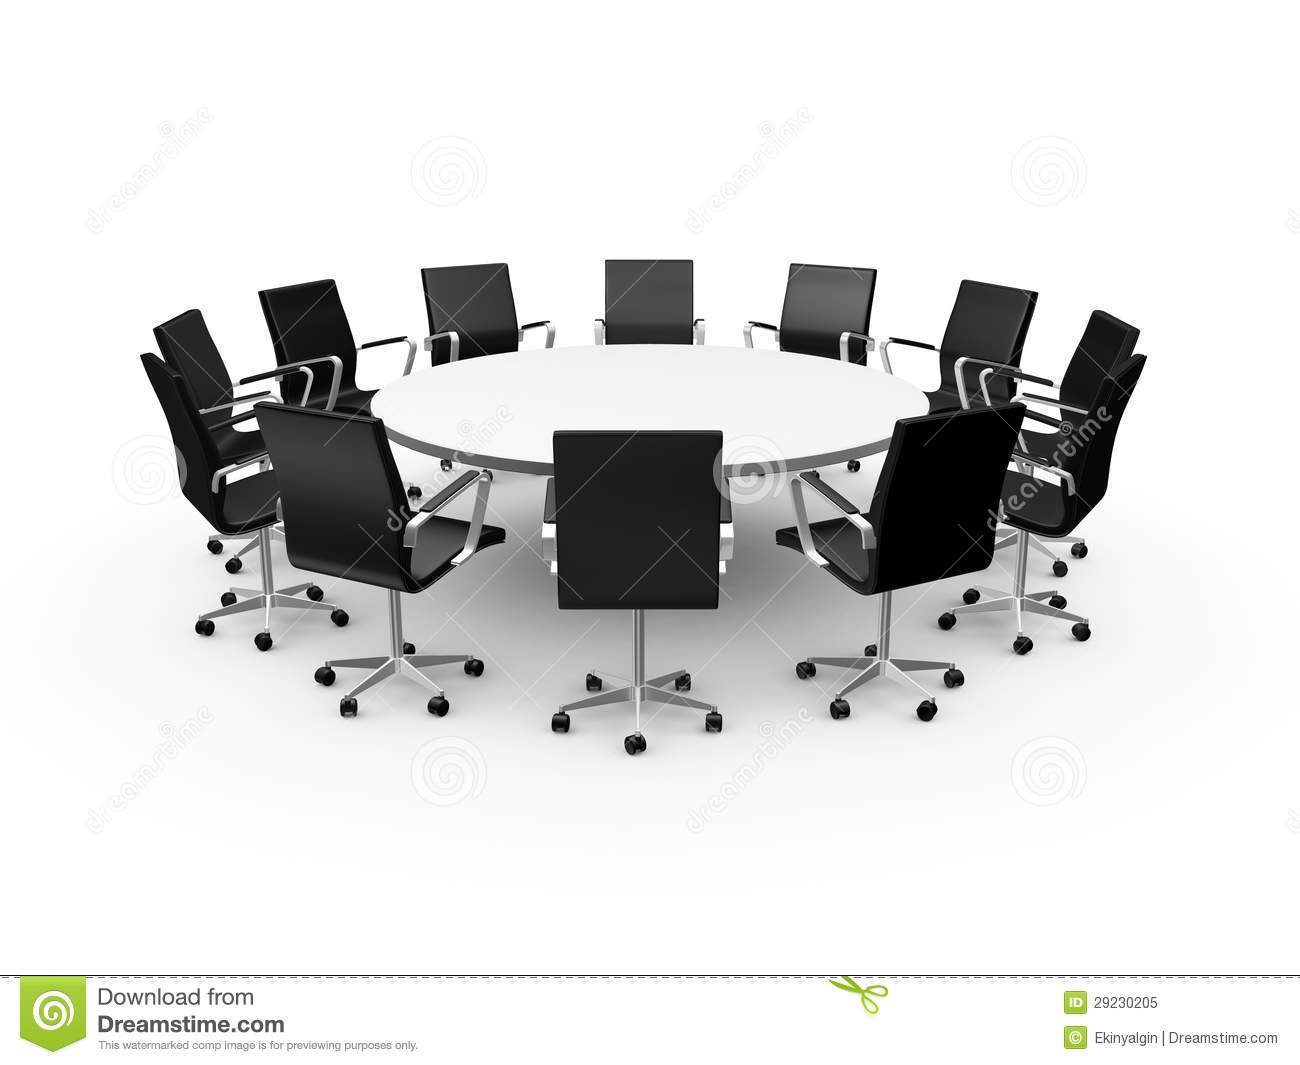 Clipart conference table jpg freeuse download Conference room clipart 1 » Clipart Portal jpg freeuse download